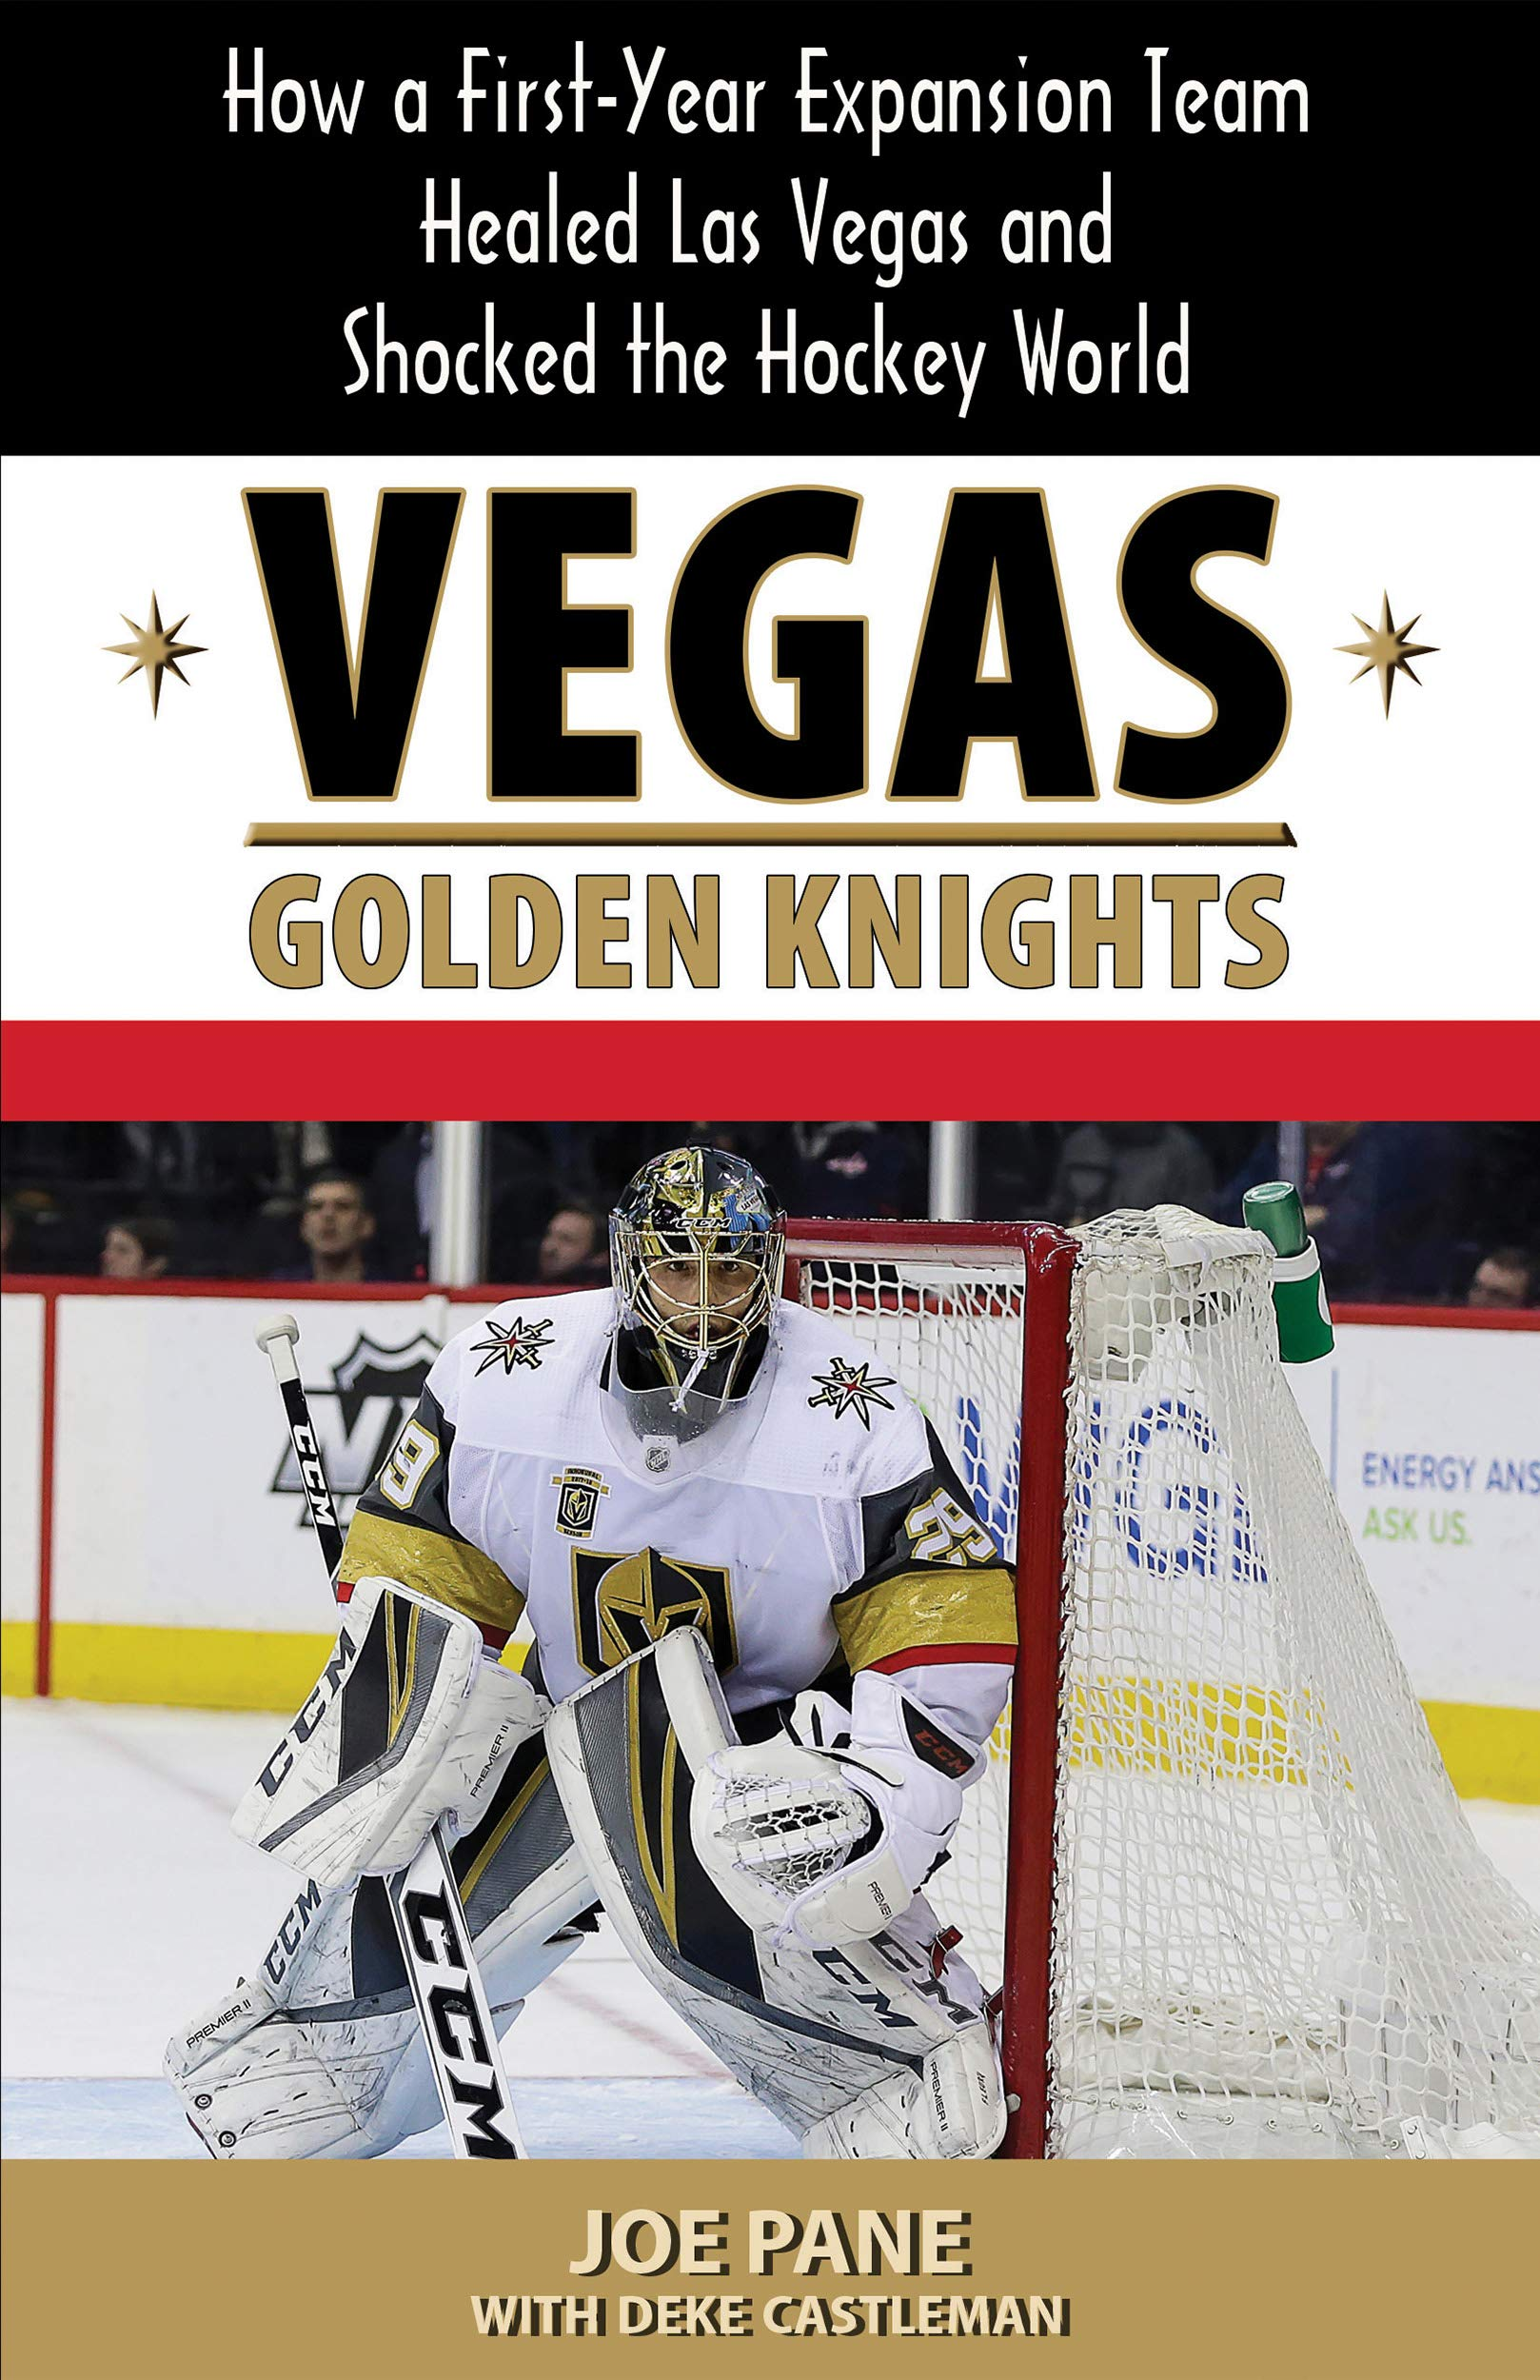 Download Vegas Golden Knights: How a First Year Expansion Team Healed Las Vegas and Shocked the Hockey World (English Edition)